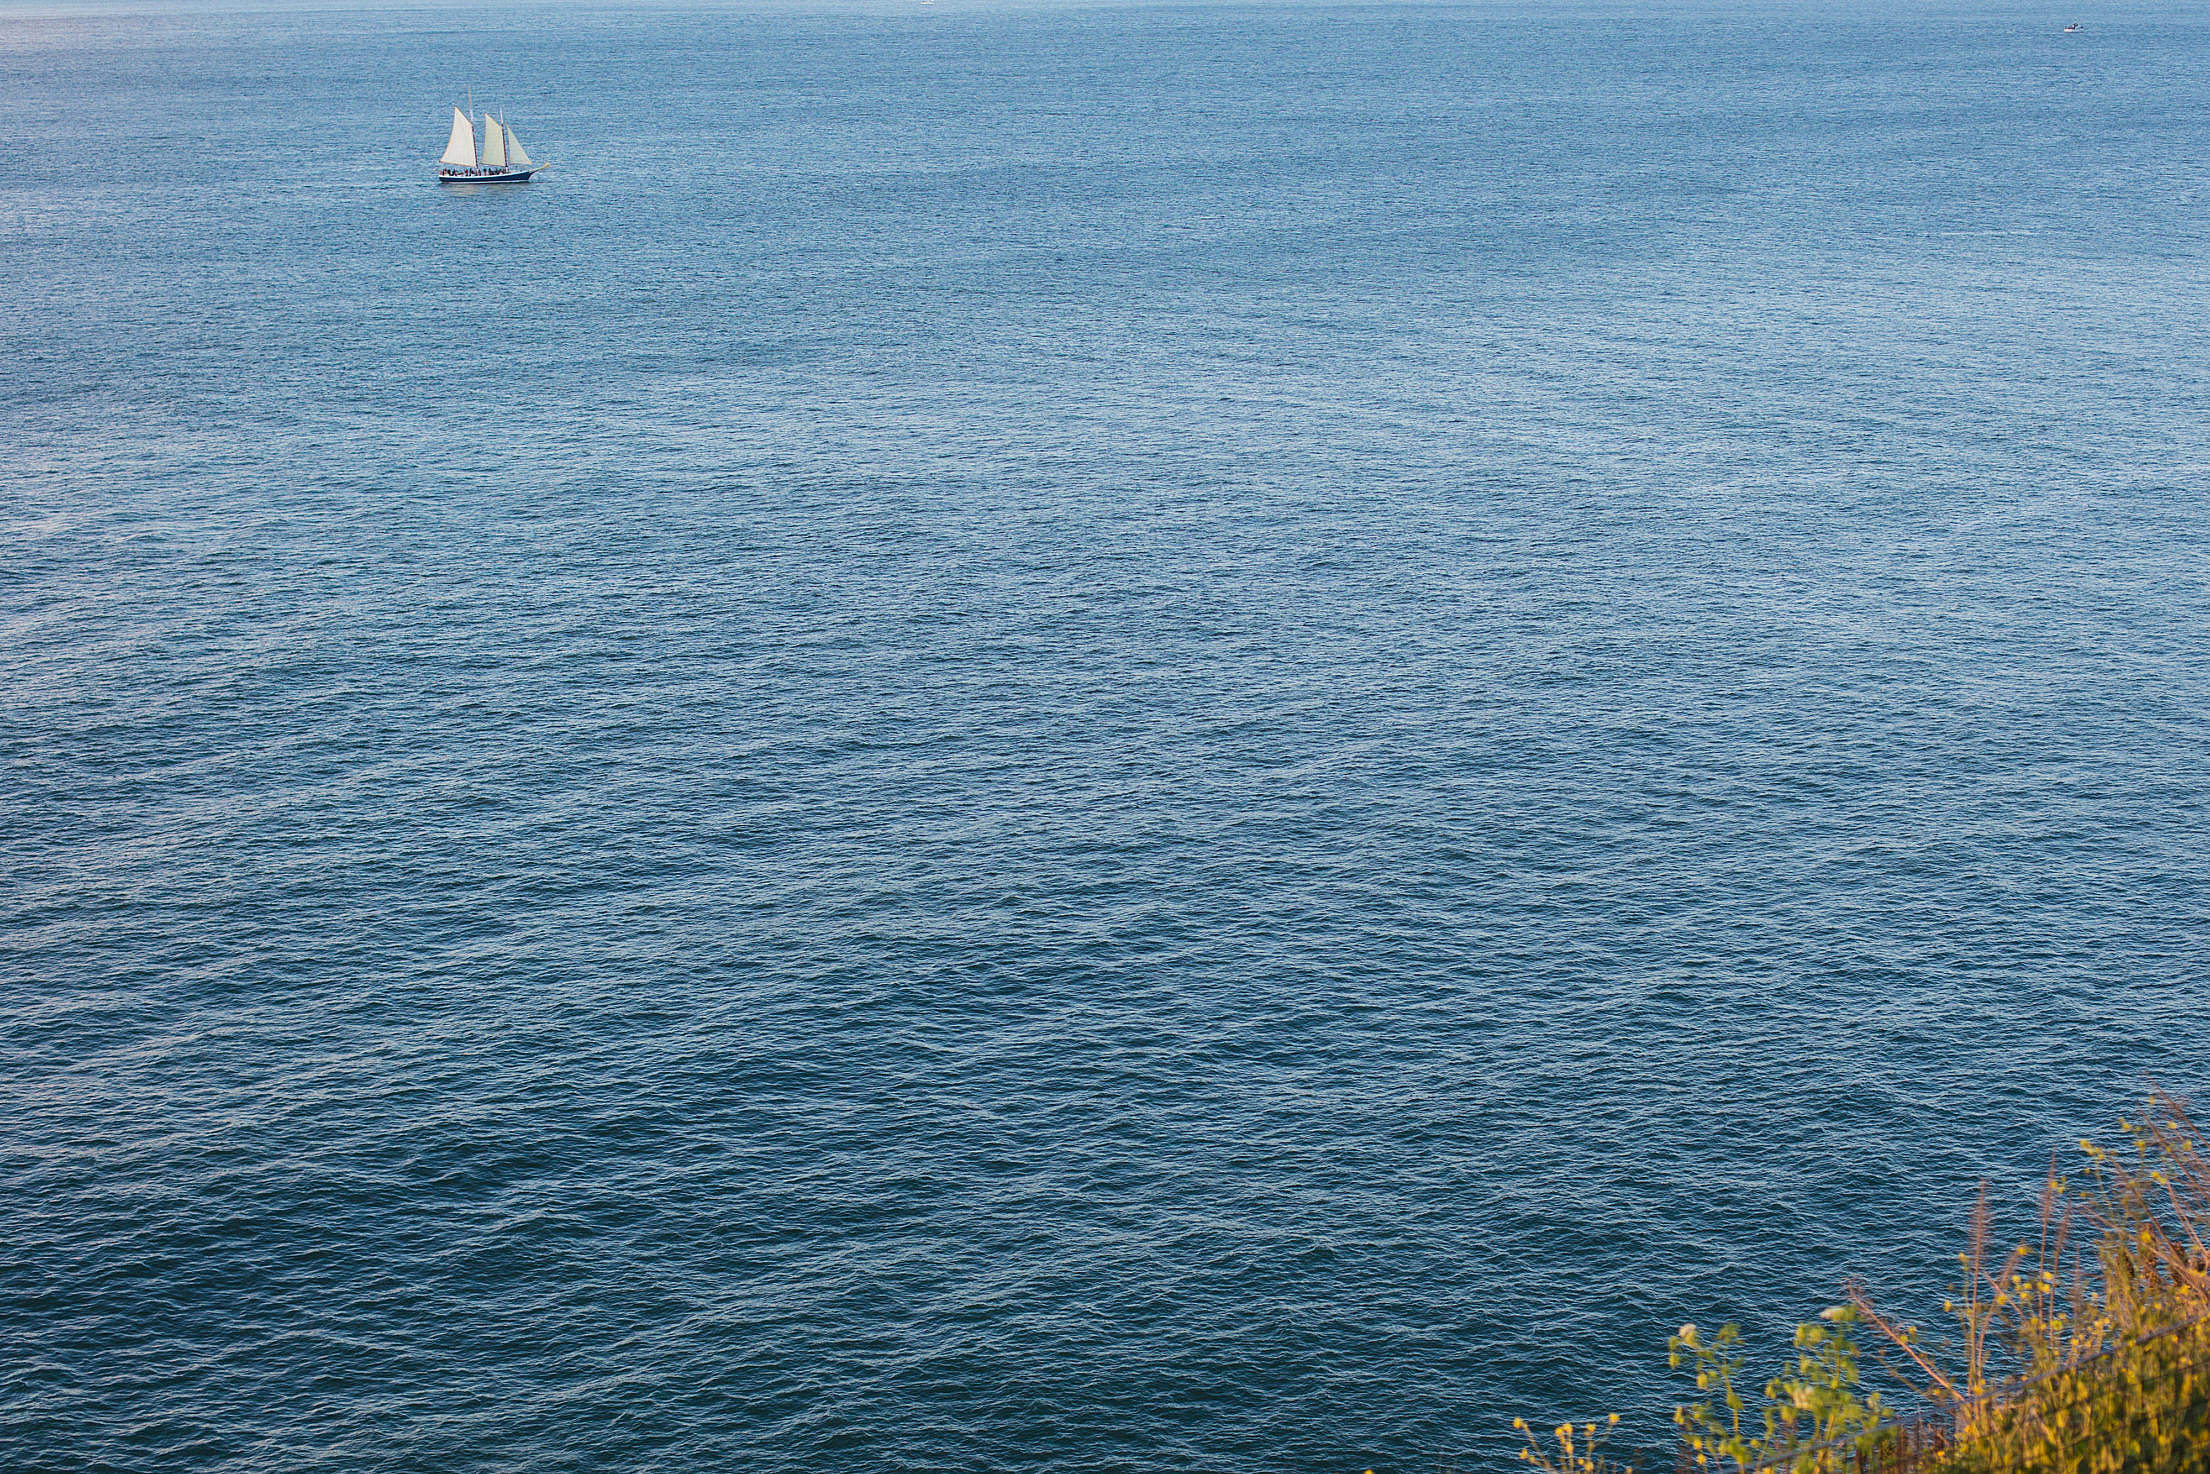 Sailing Boat in The Middle of The Sea Free Stock Photo